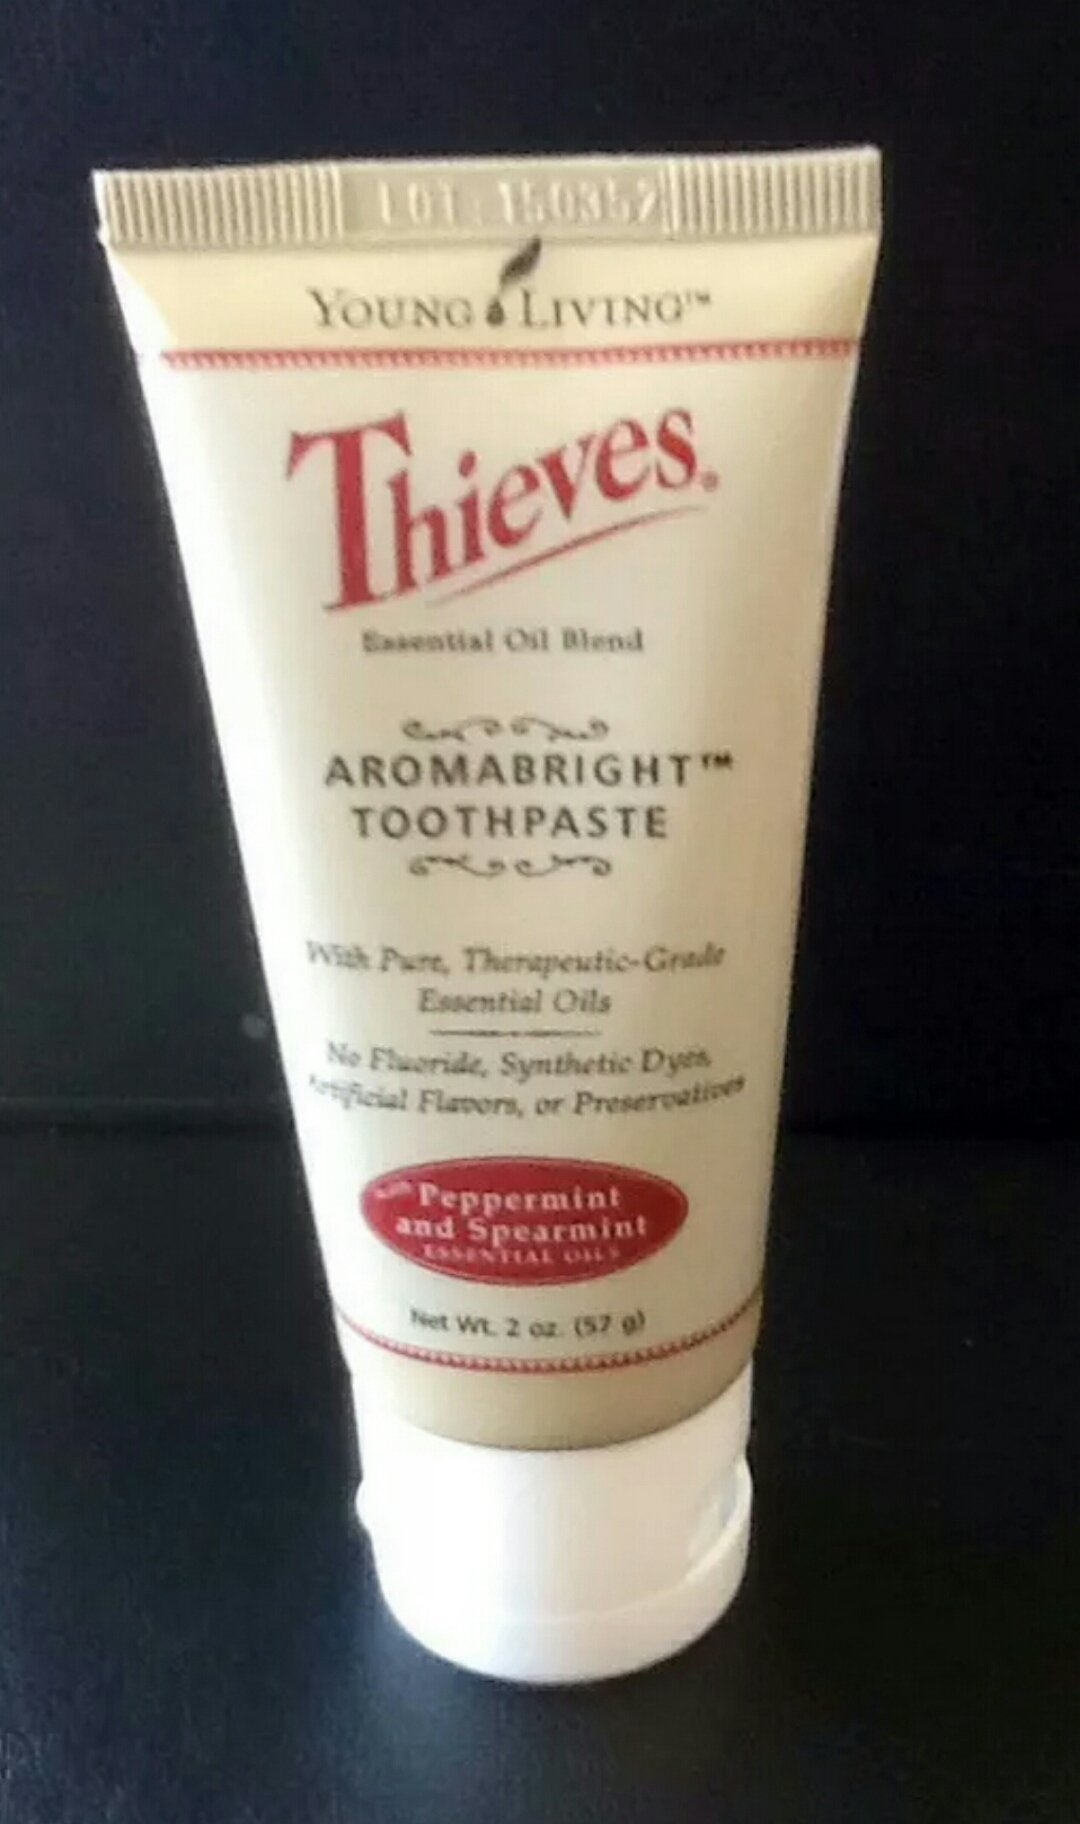 Thieves Aromabright Toothpaste 2 oz. by Young Living Essential Oil